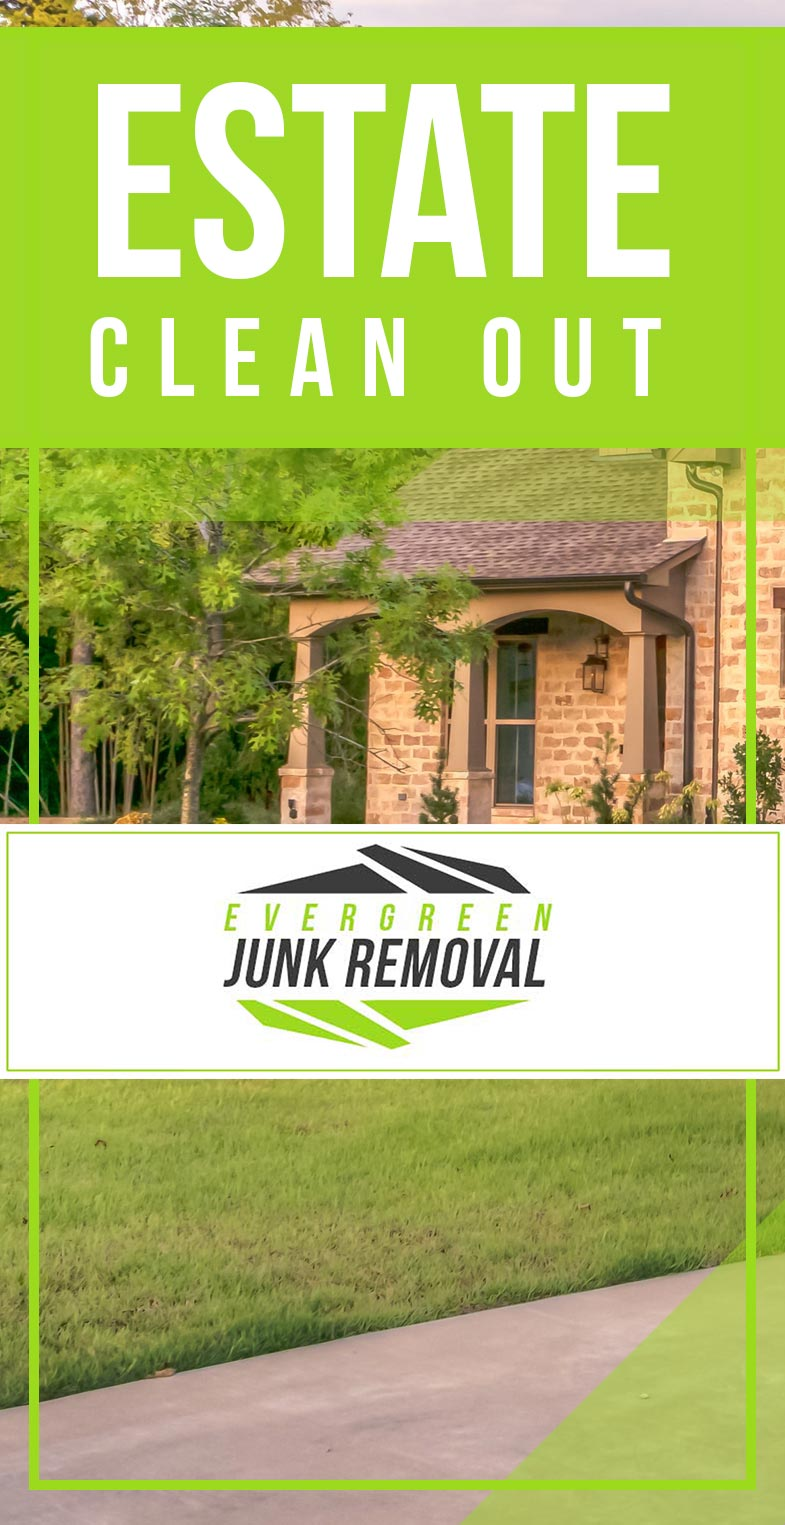 Mission Viejo Property Clean Out